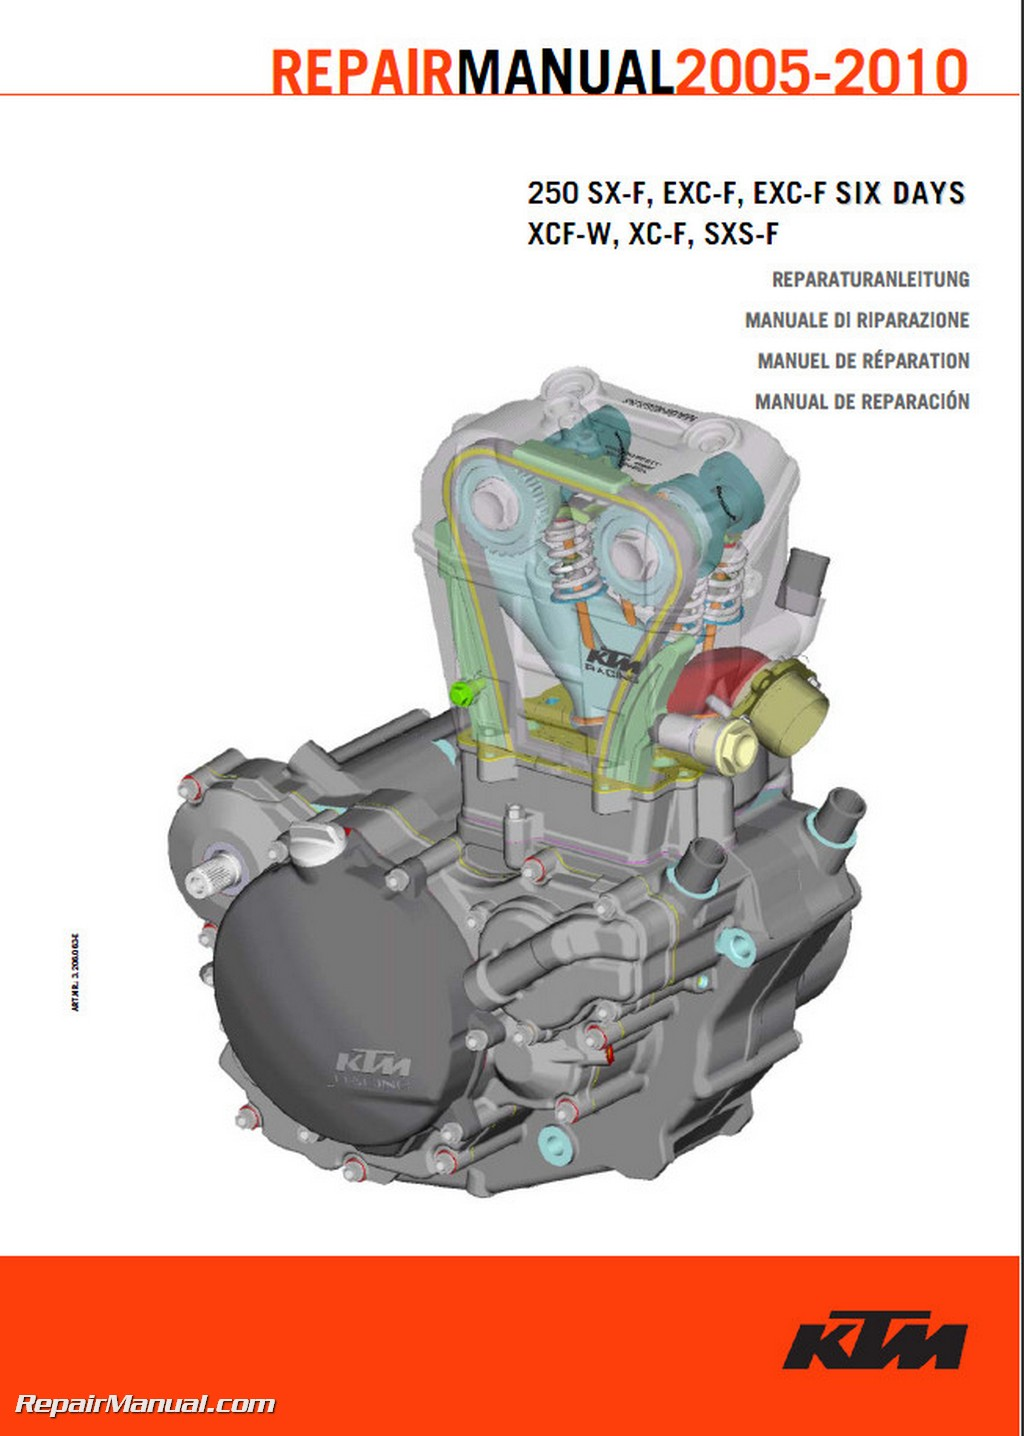 2005 2010 Ktm 250sx F Motorcycle Engine Repair Manual Paper Ebay Wire Schematic 450 Smr